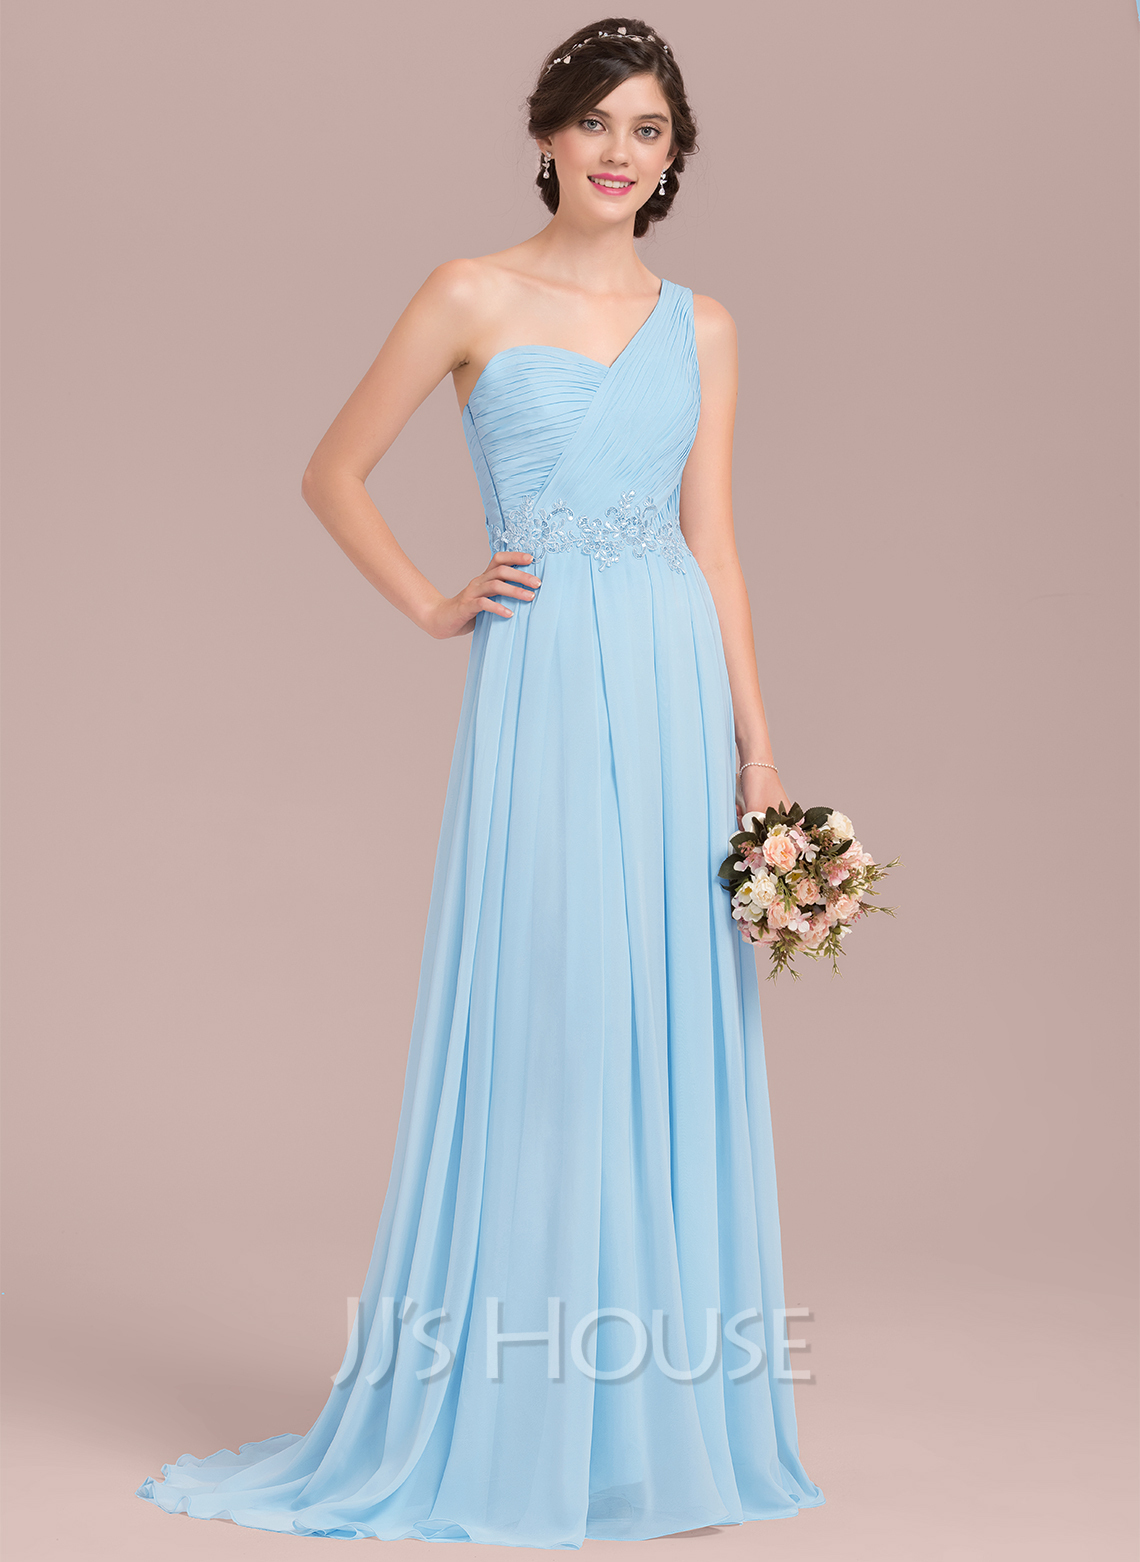 0171fa06301 A-Line Princess One-Shoulder Sweep Train Chiffon Bridesmaid Dress With  Appliques Lace. Loading zoom